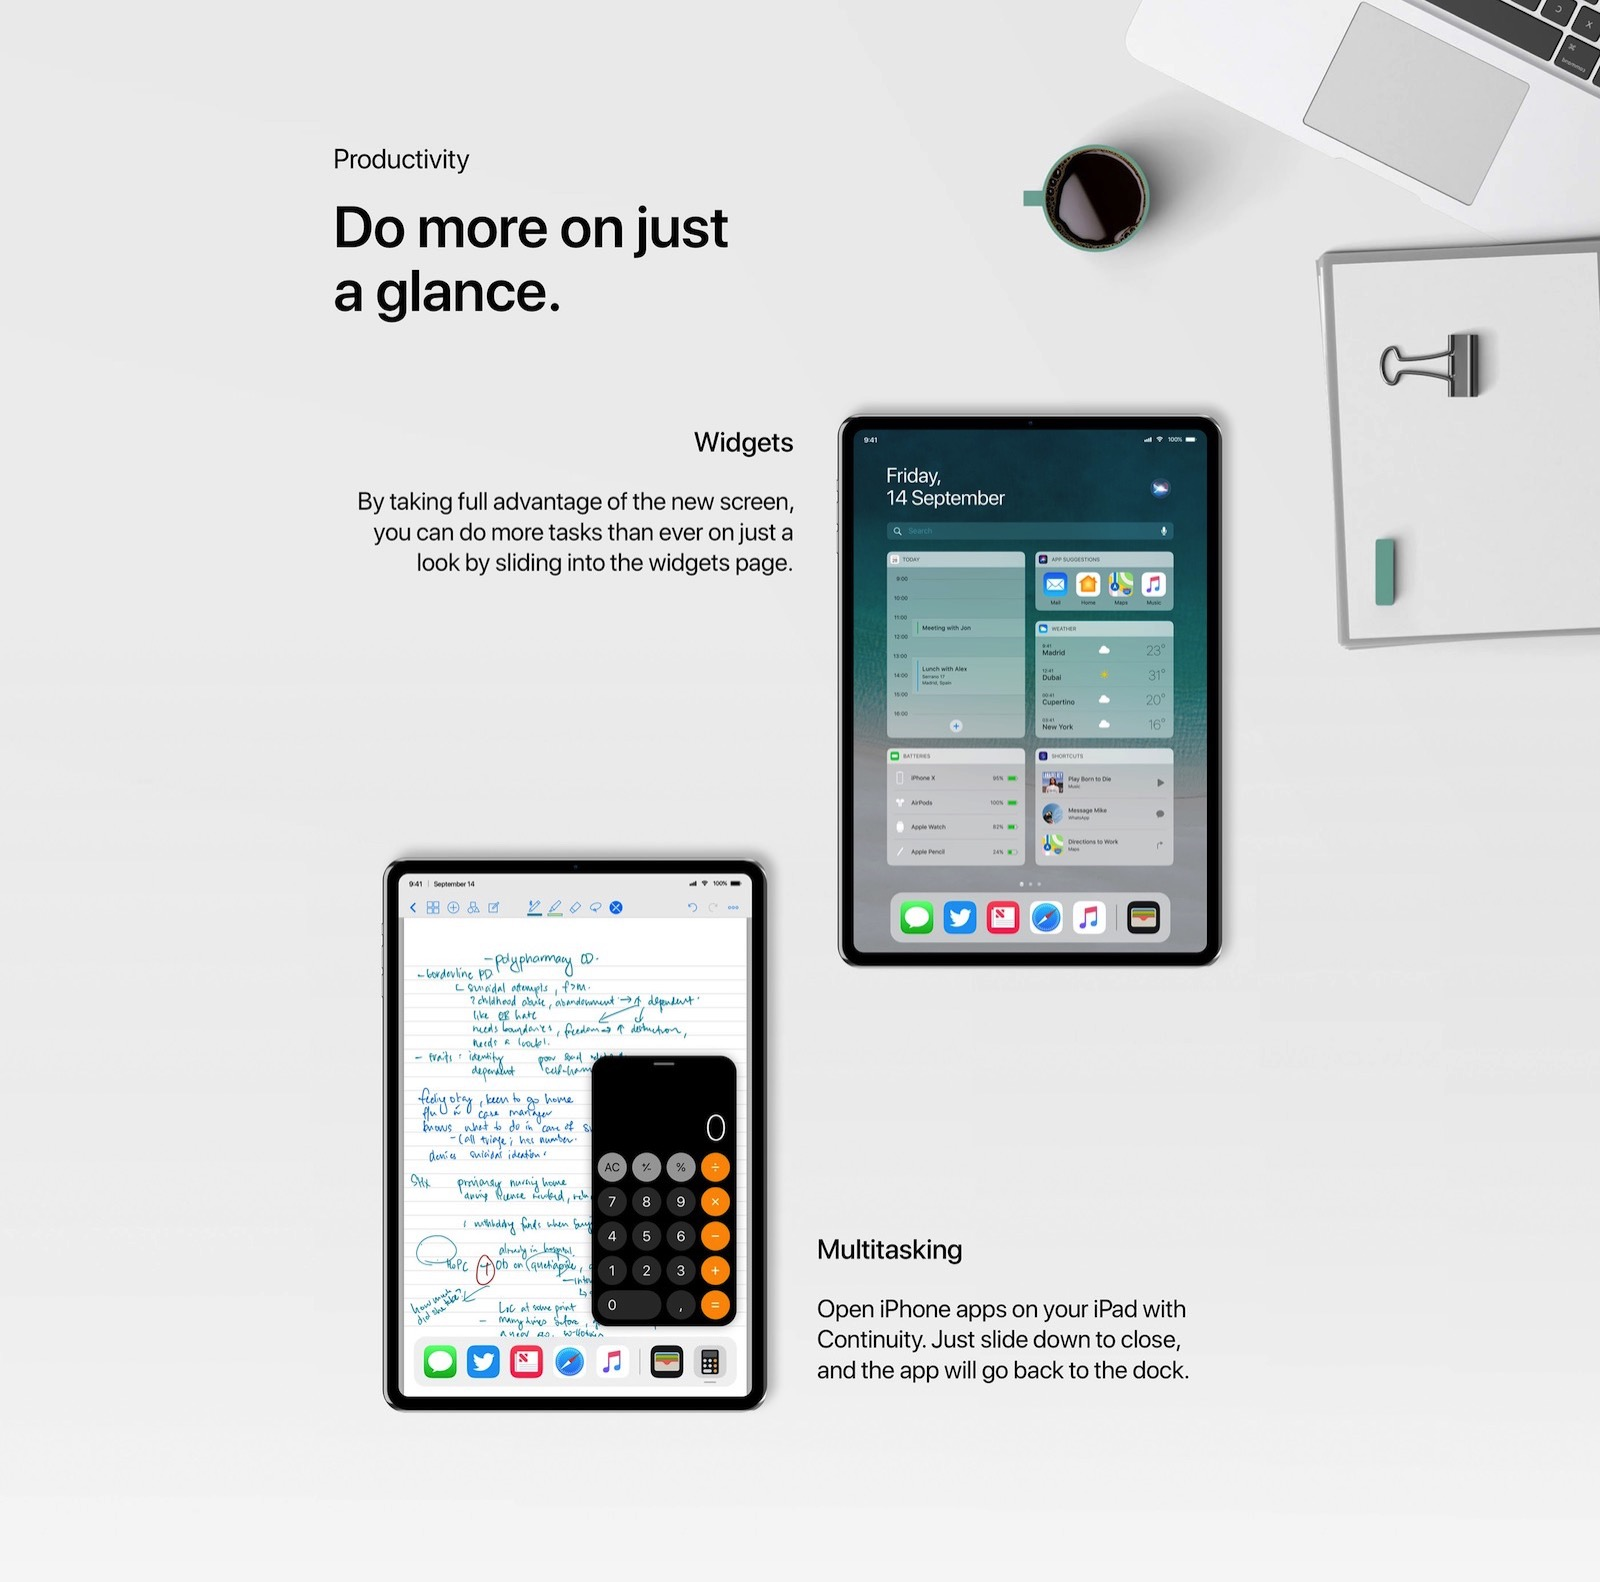 ipad-pro-concept-image-apple-page-2.jpg